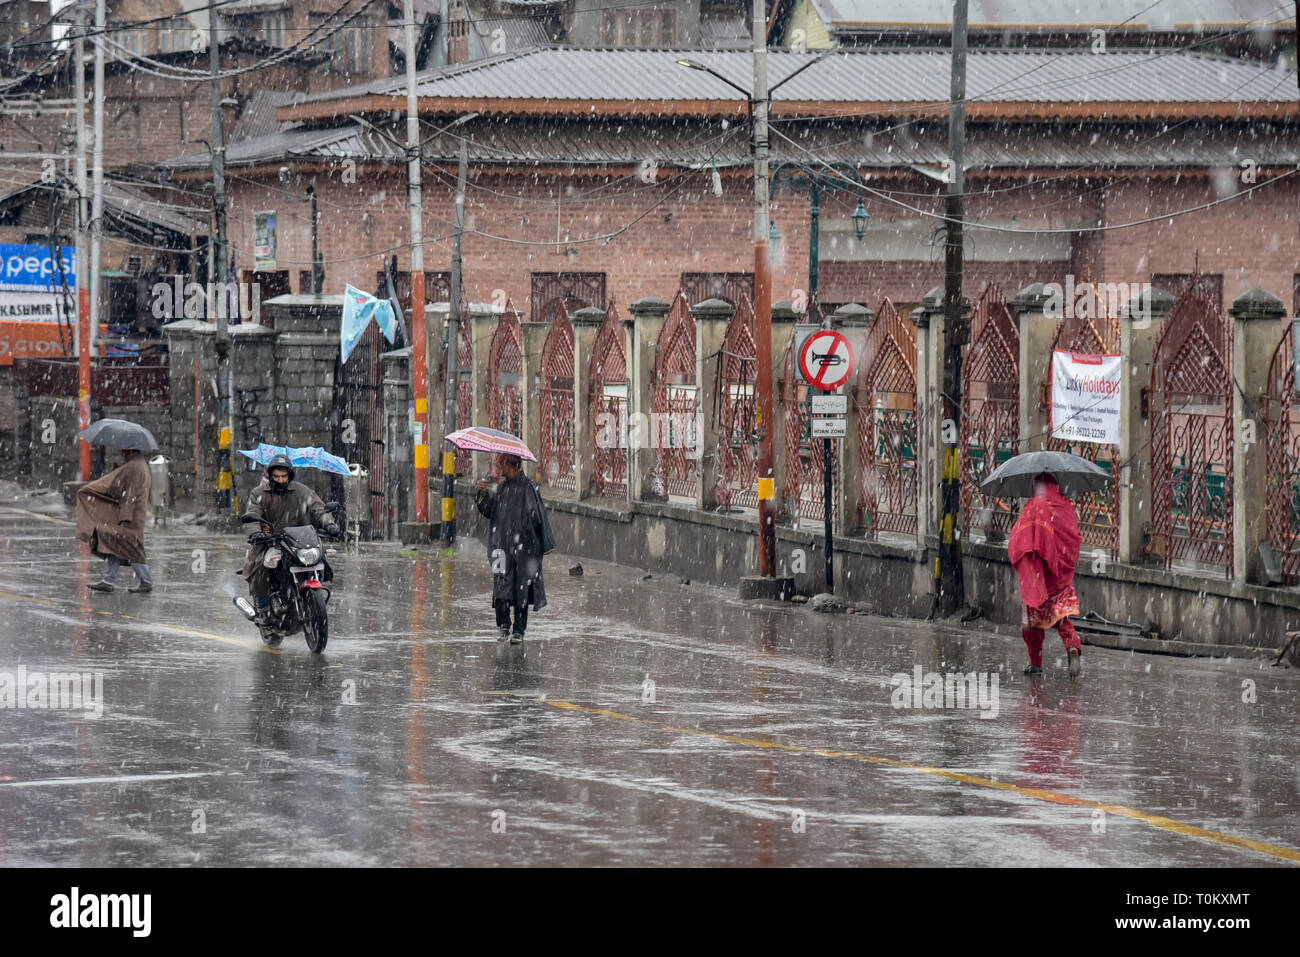 Kashmiri residents are seen walking amidst fresh snowfall during a shut-down in Srinagar. Lives were affected in Kashmir valley on Wednesday due to a protest shutdown called by the separatists against the custodial death of a school teacher yesterday. Forces in adequate numbers were also deployed in sensitive areas to thwart any protests in view of shutdown call issued by the seperatists. - Stock Image